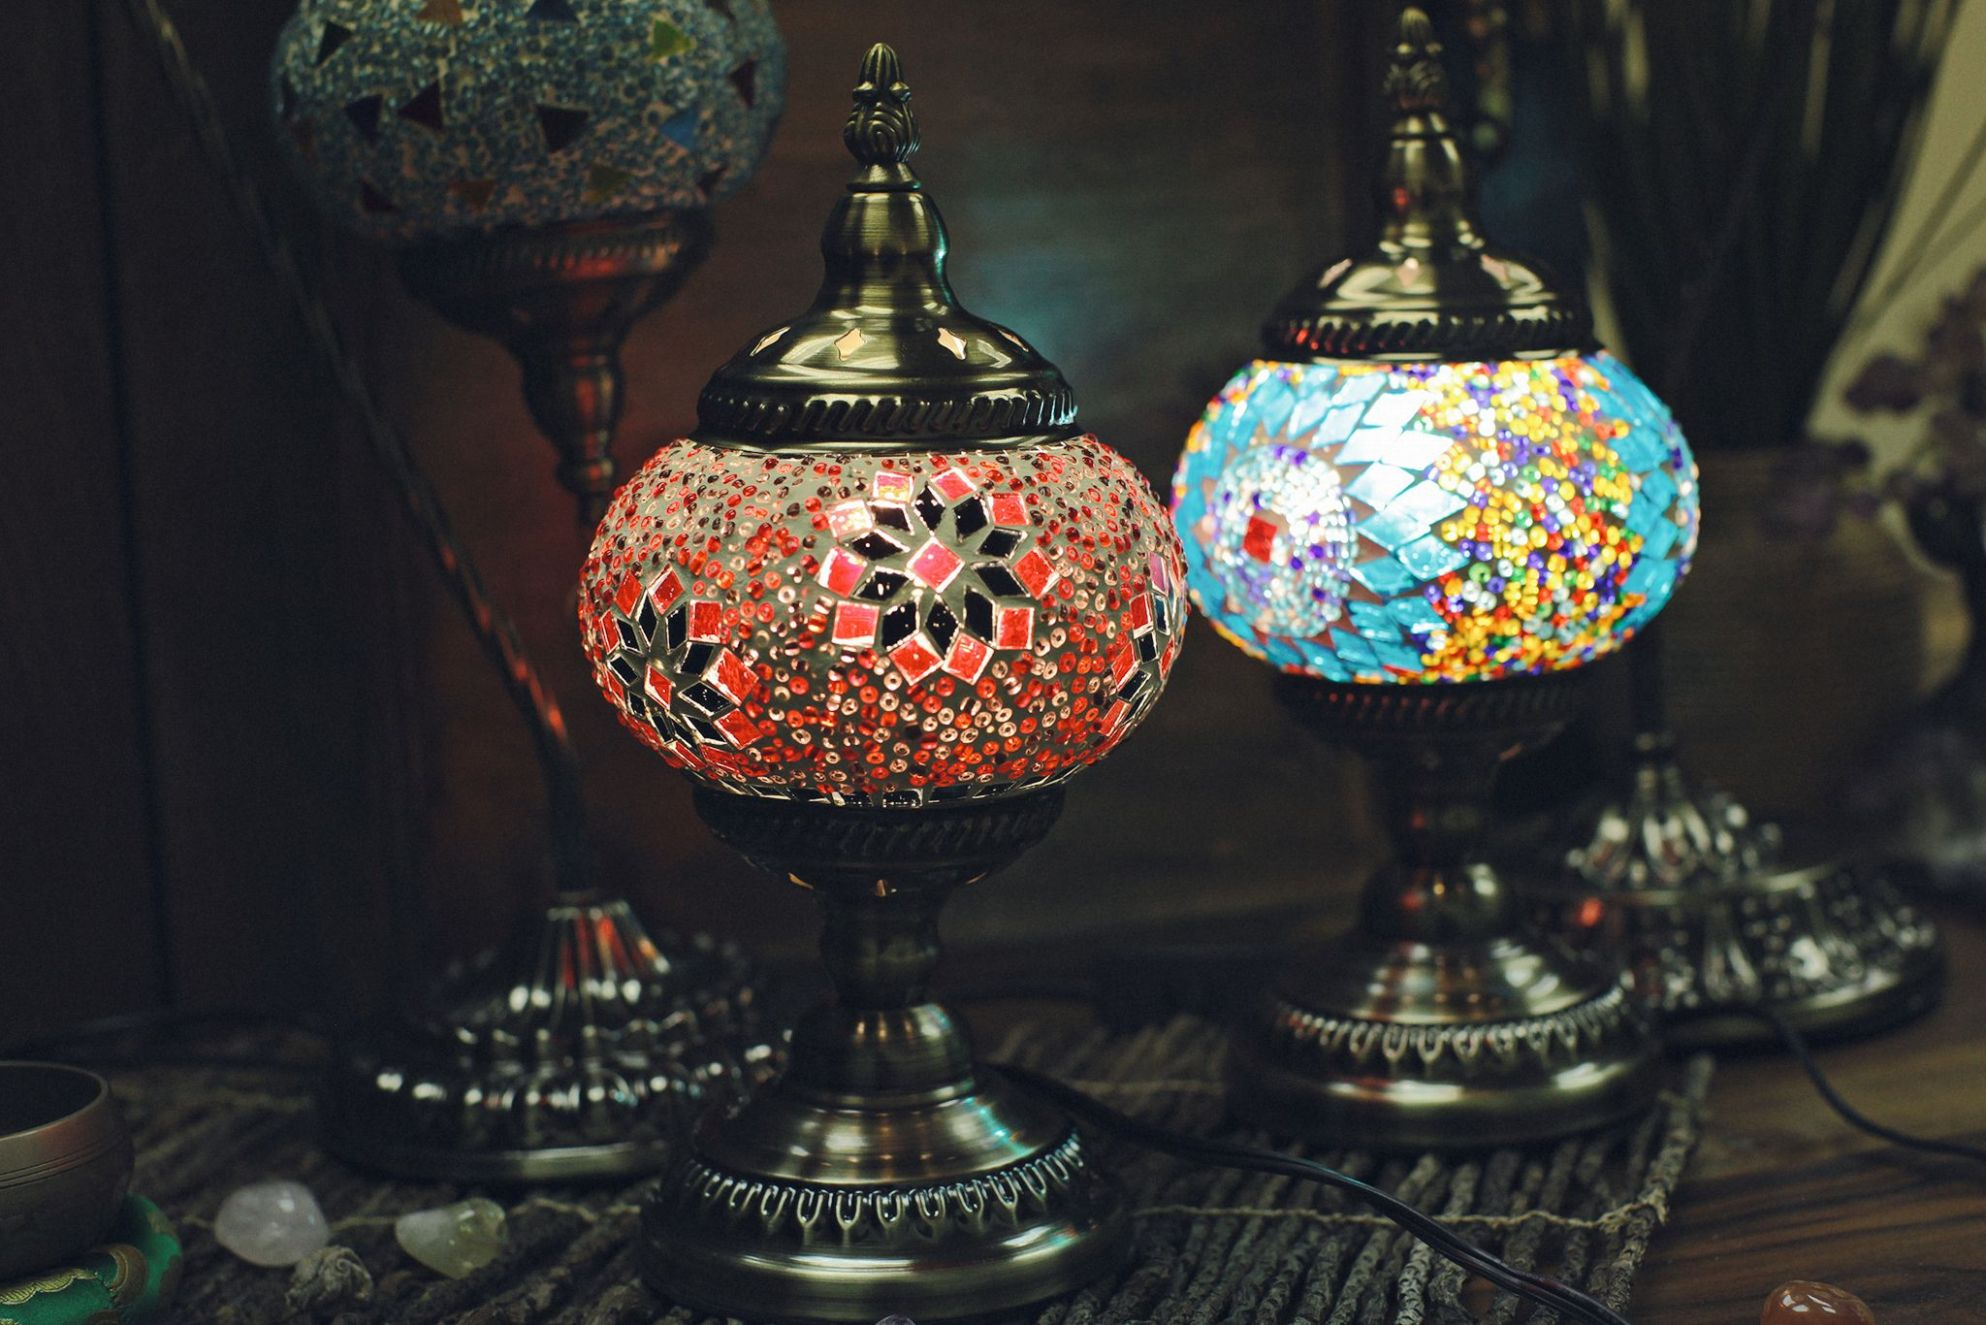 Turkish Chandeliers Ceiling and Table Lamps - Home Decor Turkish ...